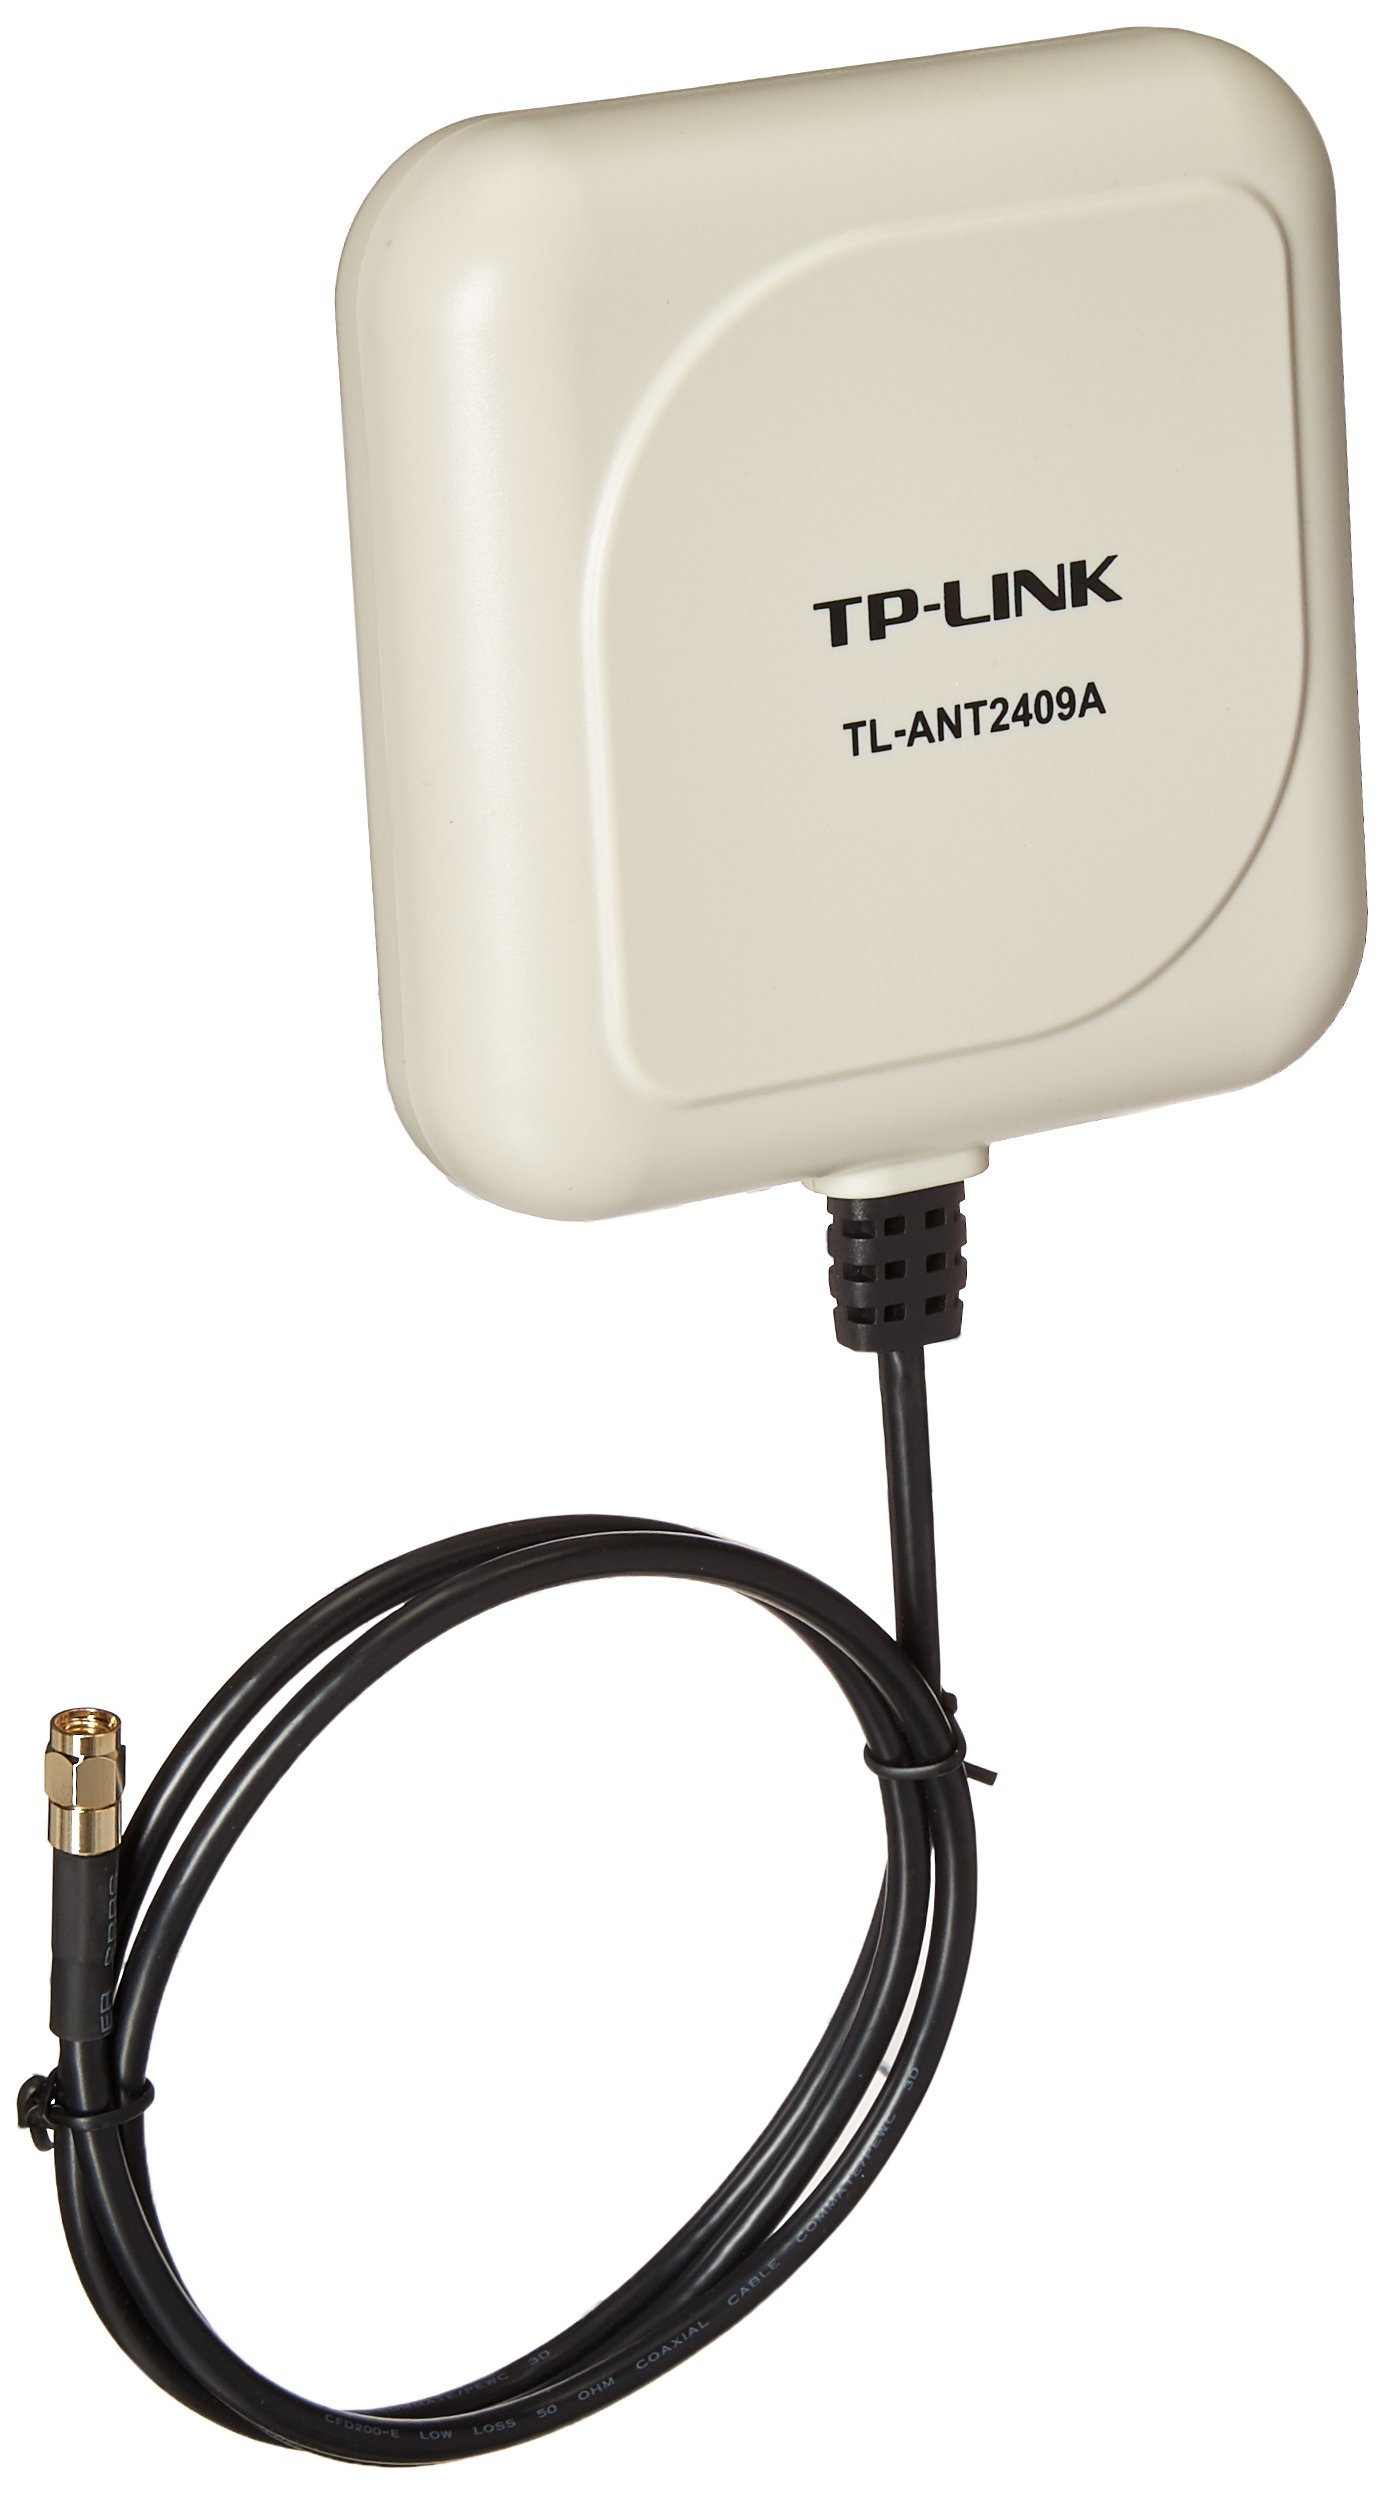 TP-Link 2.4GHz 9dBi Directional Antenna,802.11n/b/g, RP-SMA Male connector, 1m/3ft cable (TL-ANT2409A) by TP-LINK